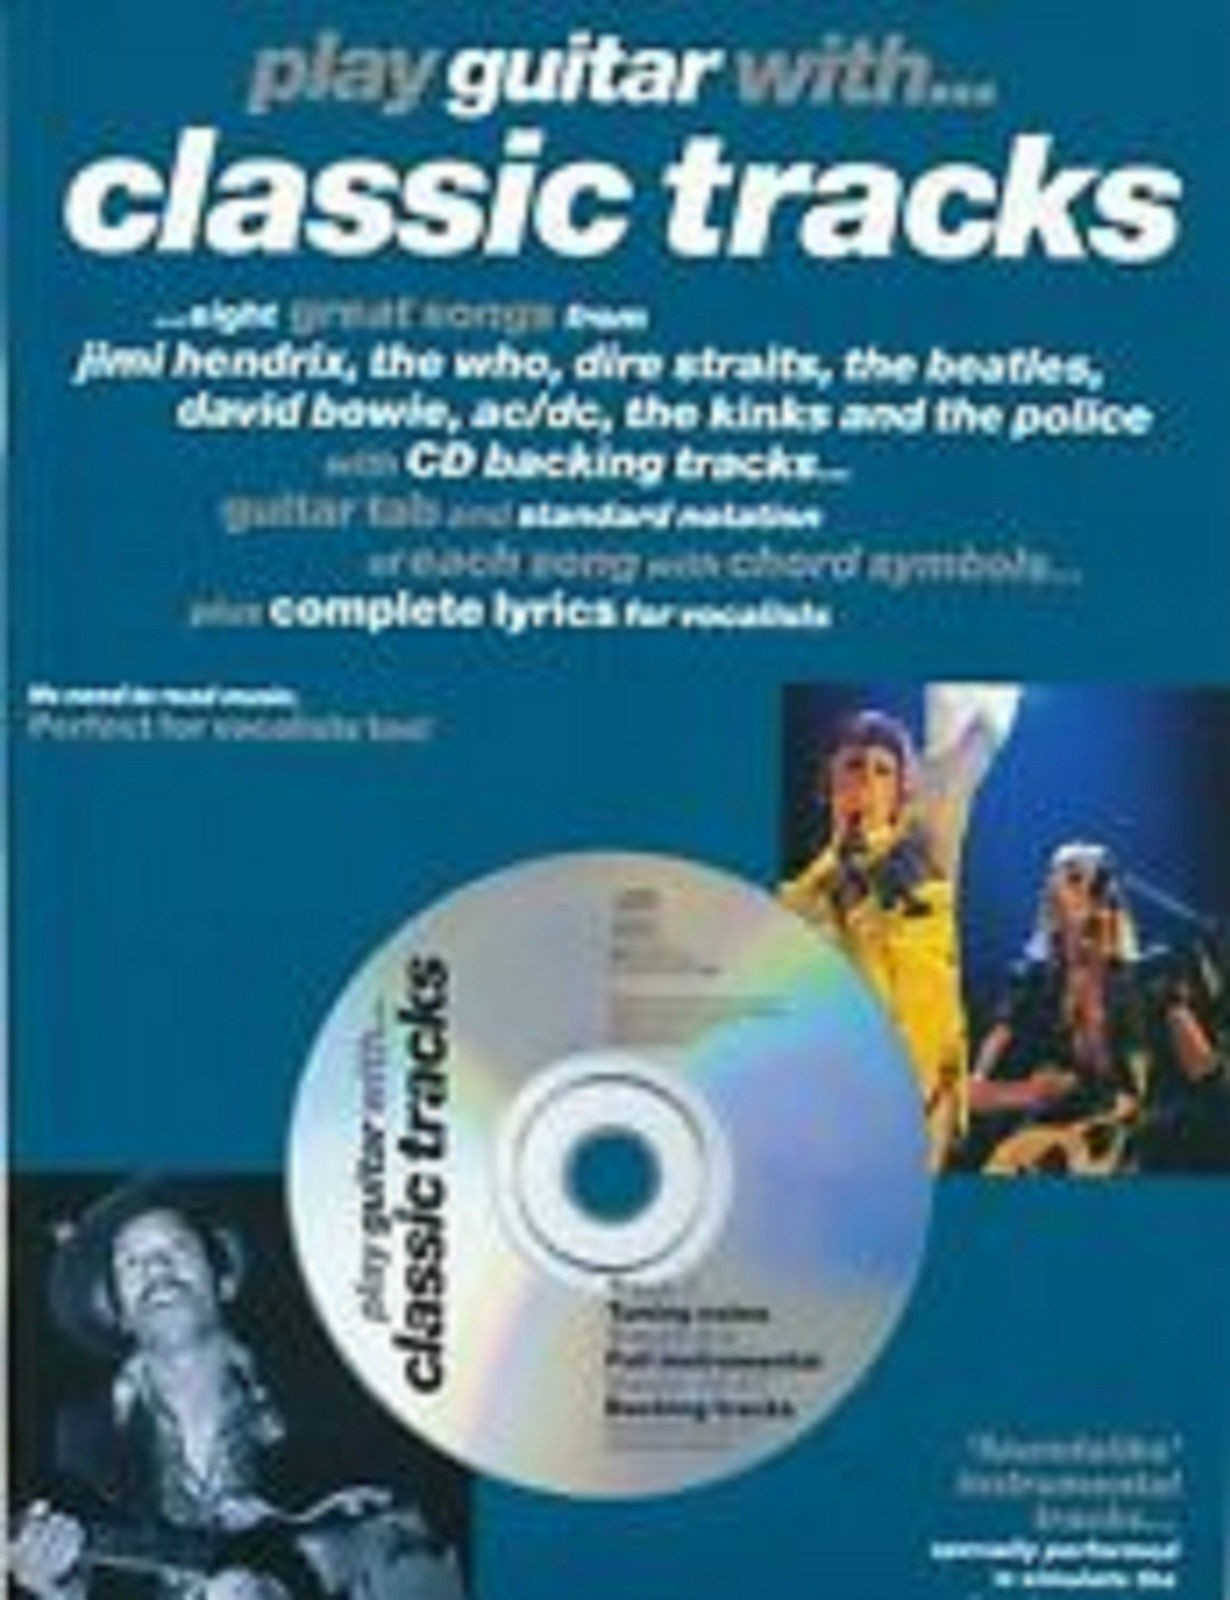 Play Guitar With ... Classic Tracks Soundalike Playalong Book CD Great Songs B21